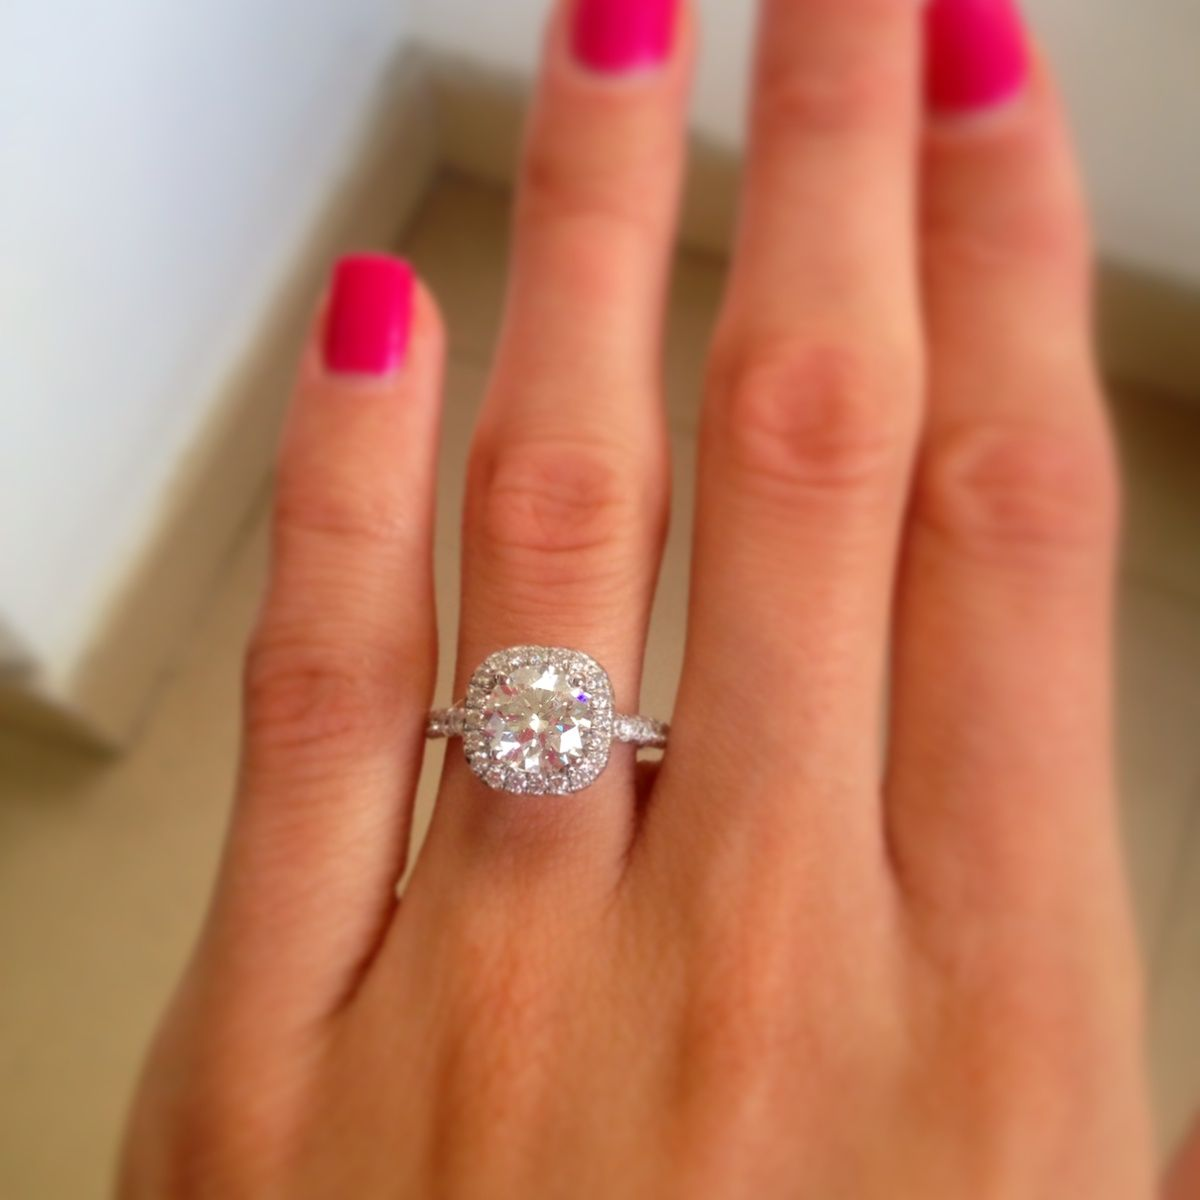 Double Halo Engagement Ring On Finger Google Search